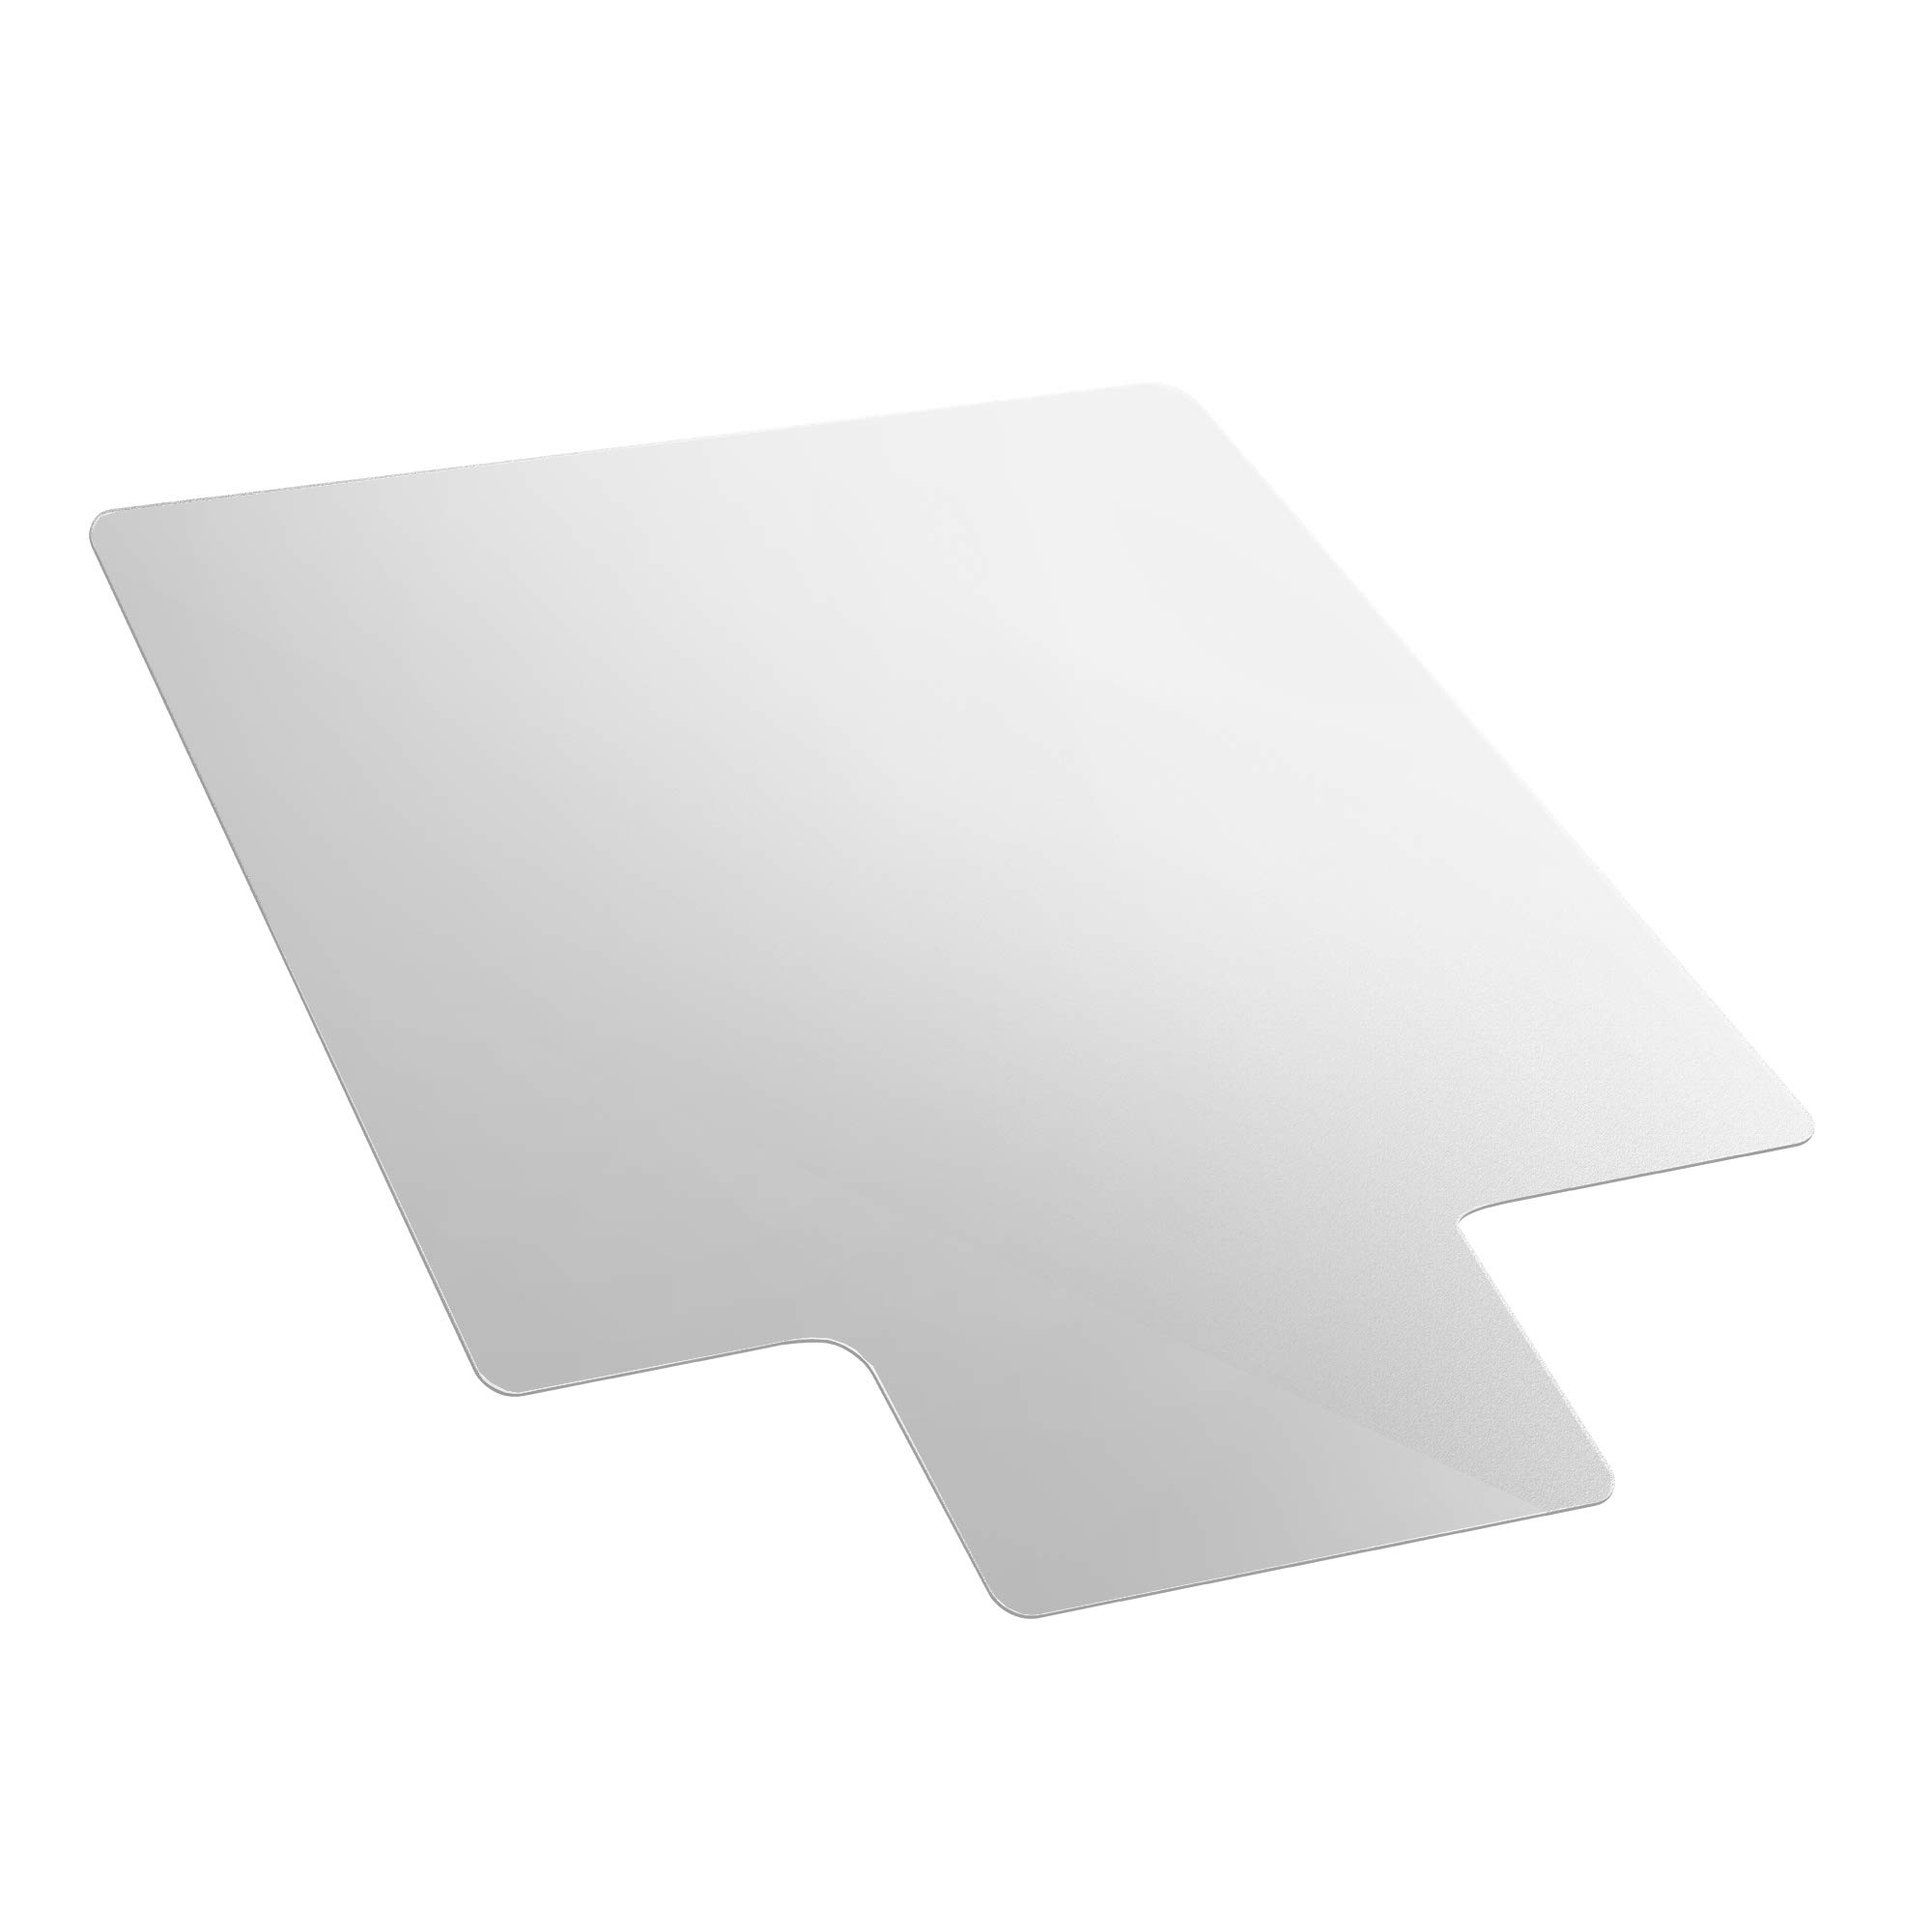 AmazonBasics Polycarbonate Chair Mat with Lip for Hard Floors - 47'' x 53''